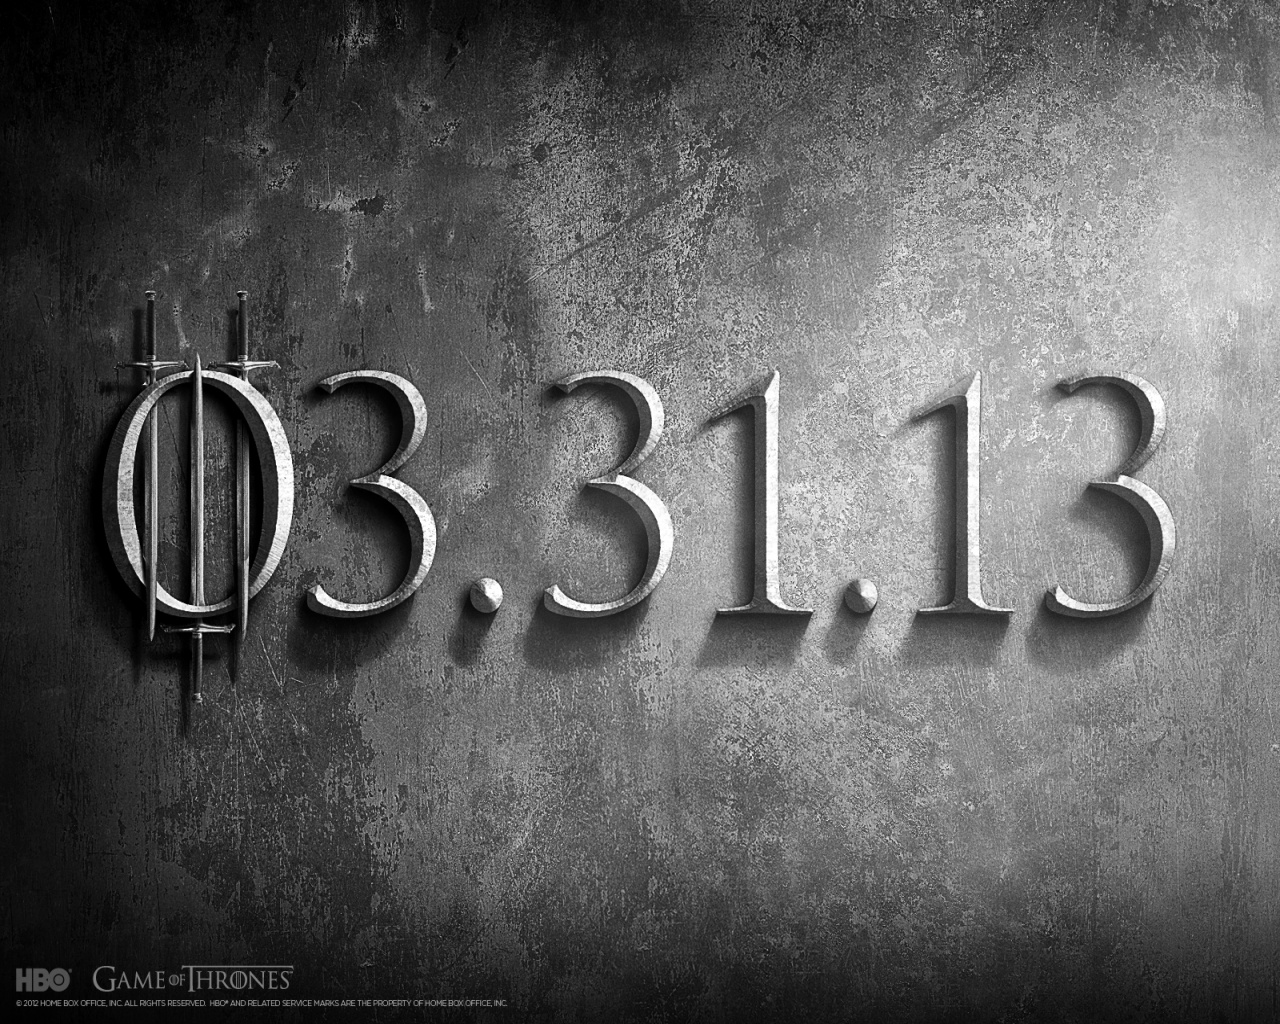 1280x1024 Game of Thrones Season 3 desktop PC and Mac wallpaper 1280x1024